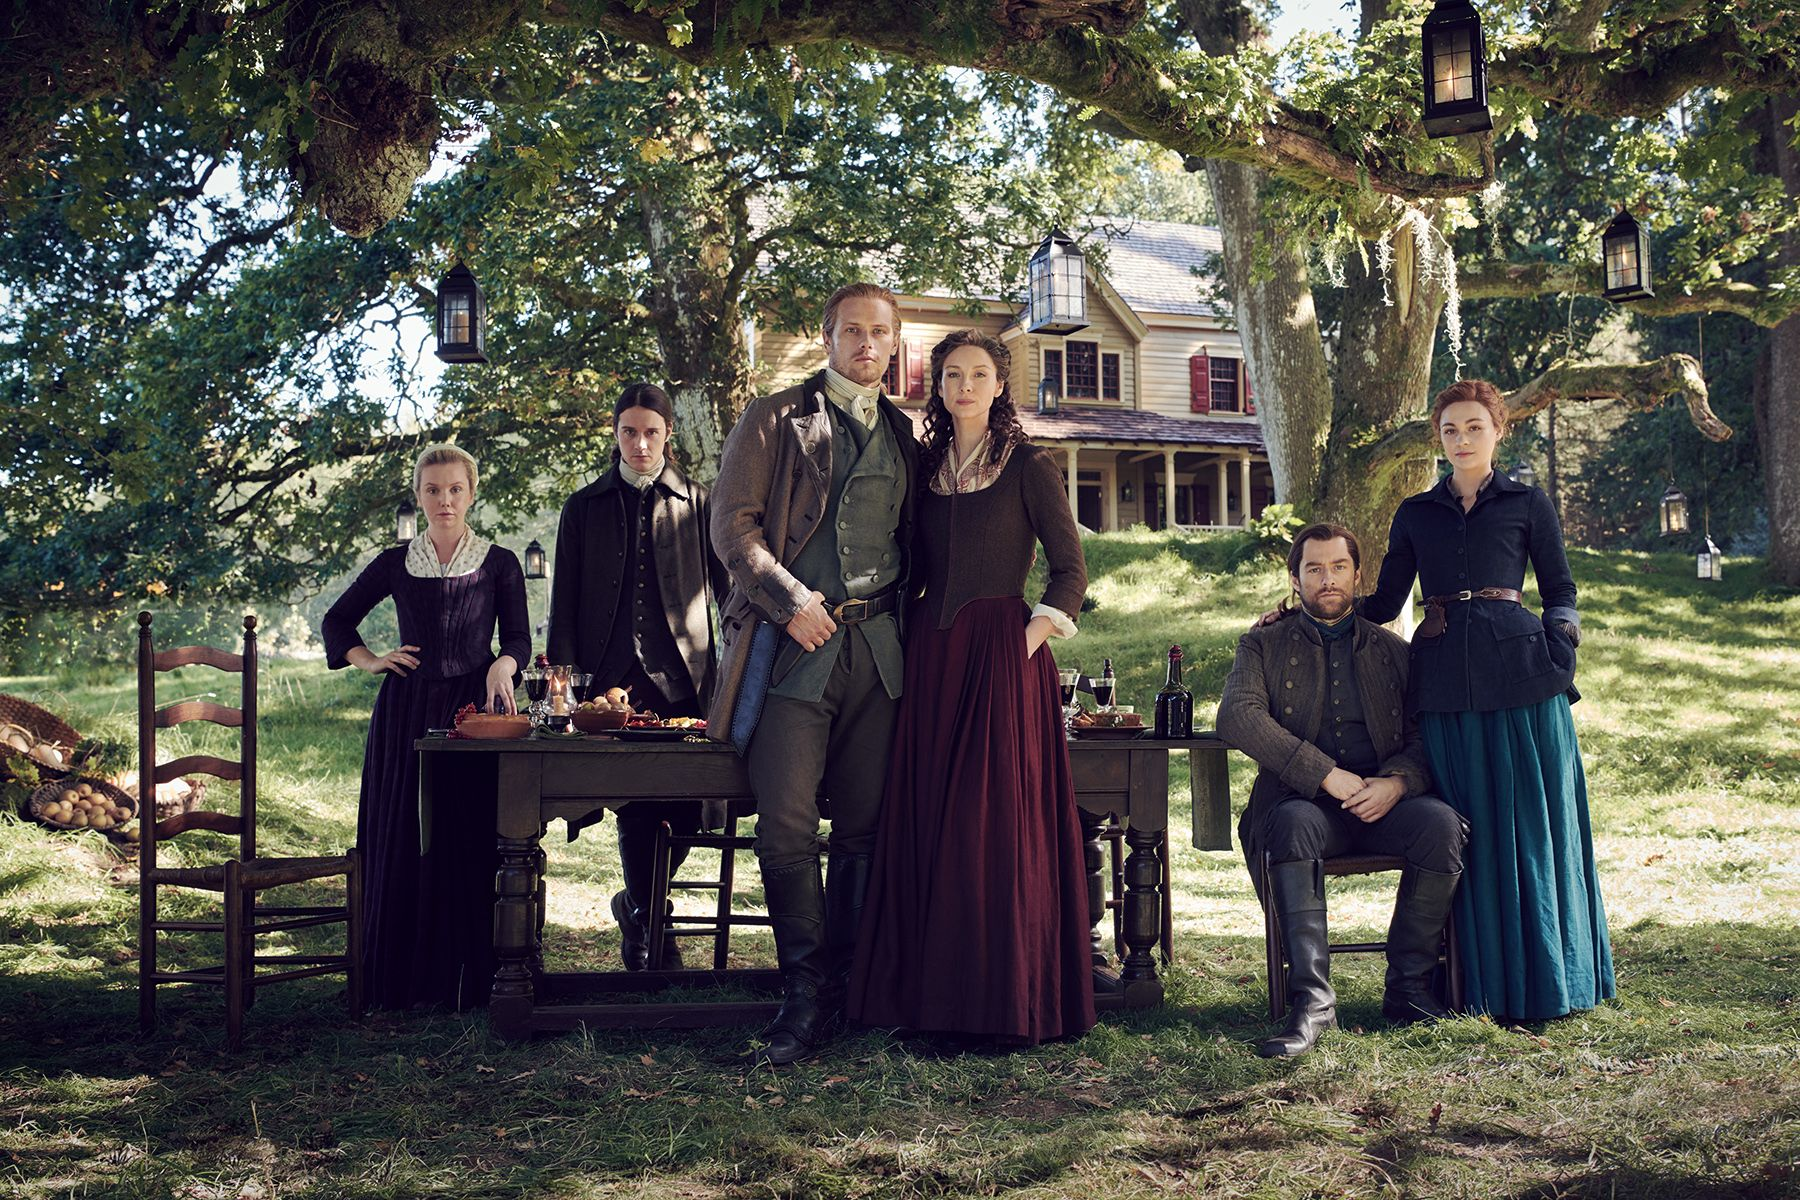 Outlander Season 6: Release Date, Cast, Plotline and Much More